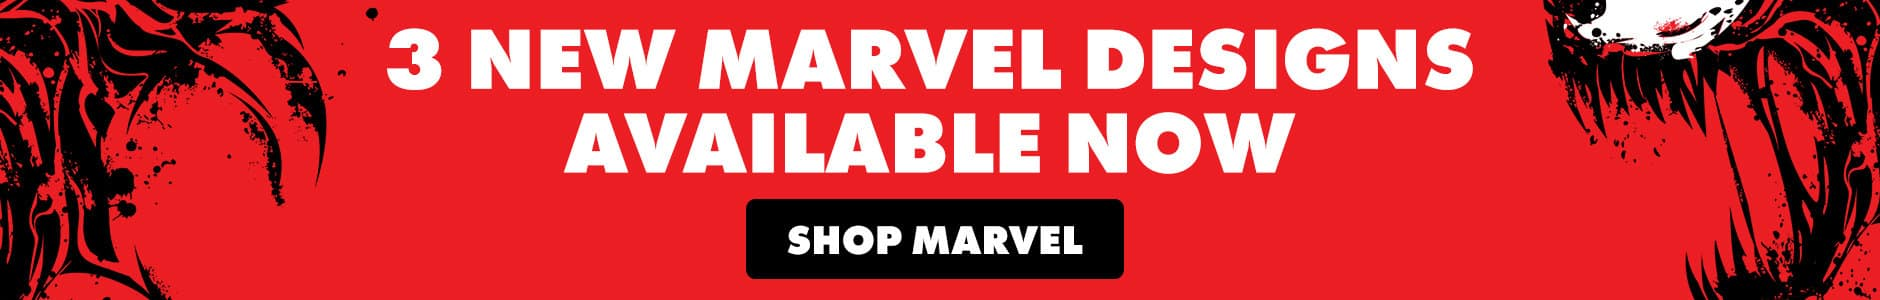 3 new Marvel designs available now. Shop Marvel.